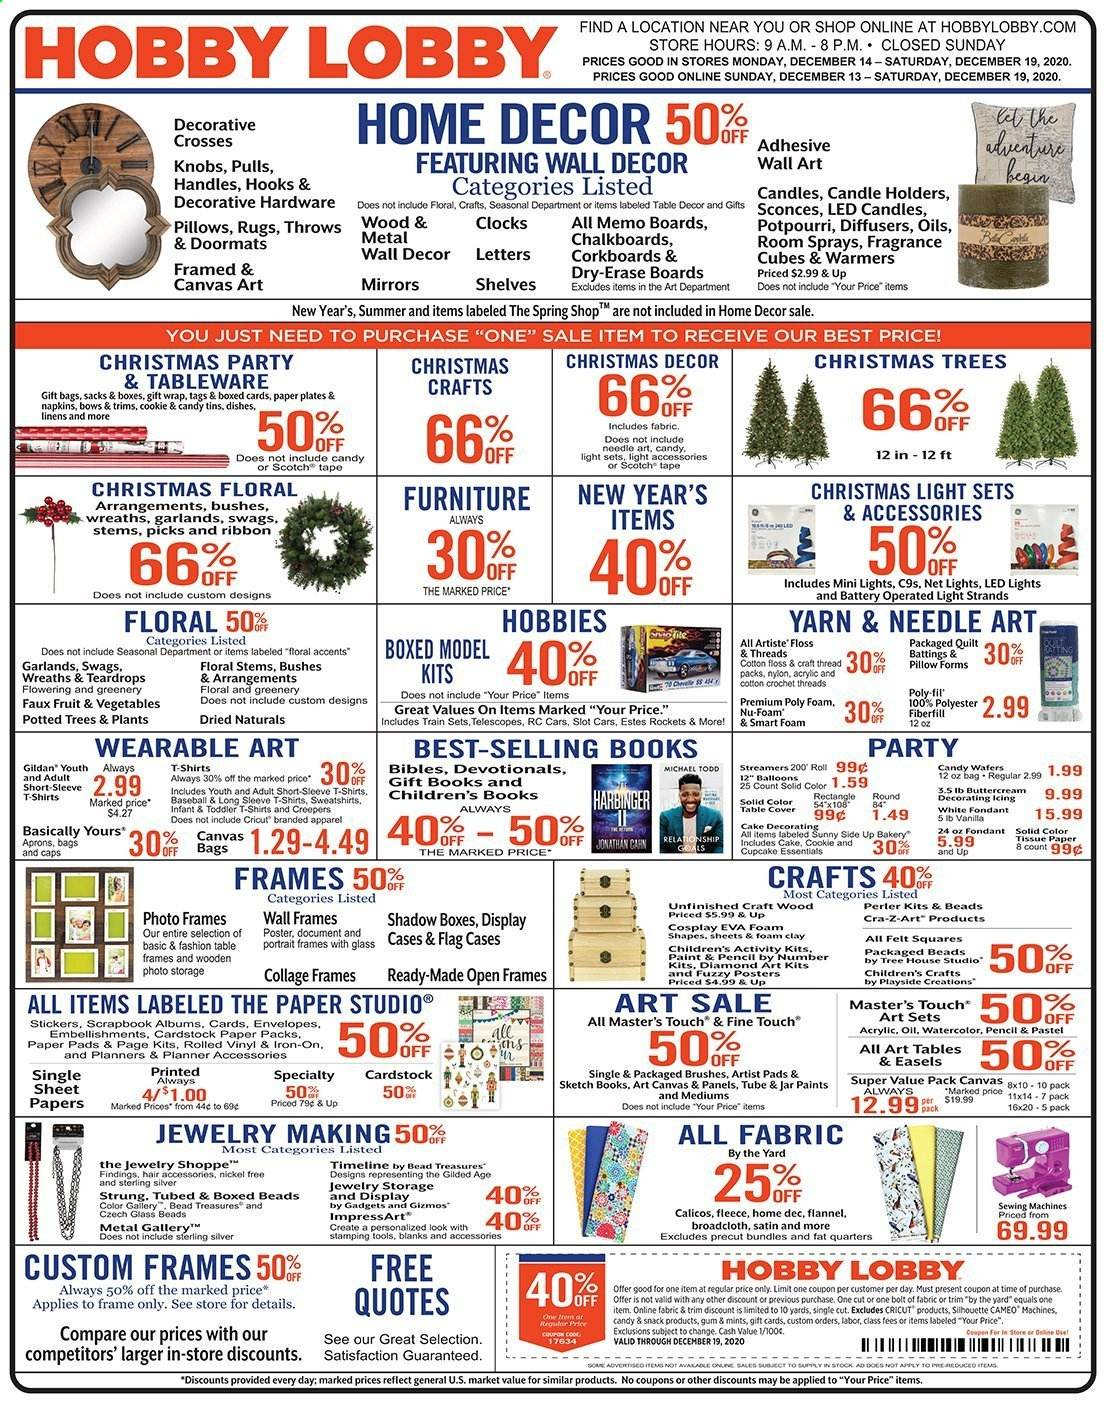 Hobby Lobby Flyer - 12.13.2020 - 12.19.2020 - Sales products - box, candle, cupcake, diffuser, fragrance, LED light, light set, linens, rug, sheet, shelf, shelves, shirt, solid, sticker, sweatshirt, table, tableware, tape, wafers, wall decor, handles, hook, christmas tree, christmas decor, iron, jar, pillow, plate, quilt, christmas lights, paper plate, cake, candy, snack, gift wrap, gum, train, envelope, vinyl, napkins, ribbon, vegetable, tools, craft, essentials, led, spring, throws. Page 1.